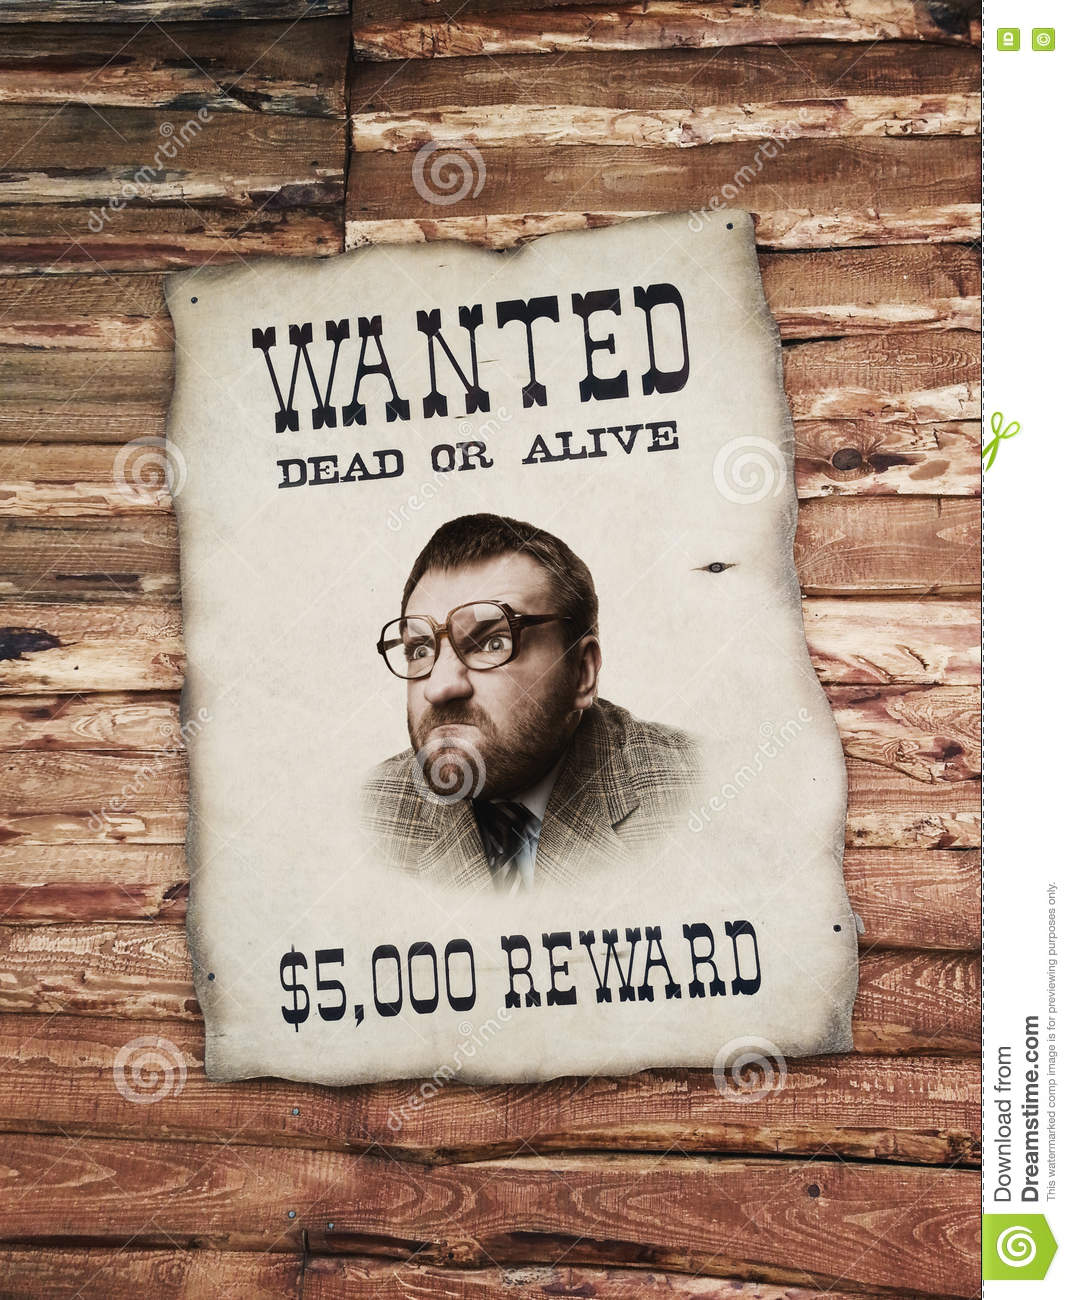 Man on the wanted list